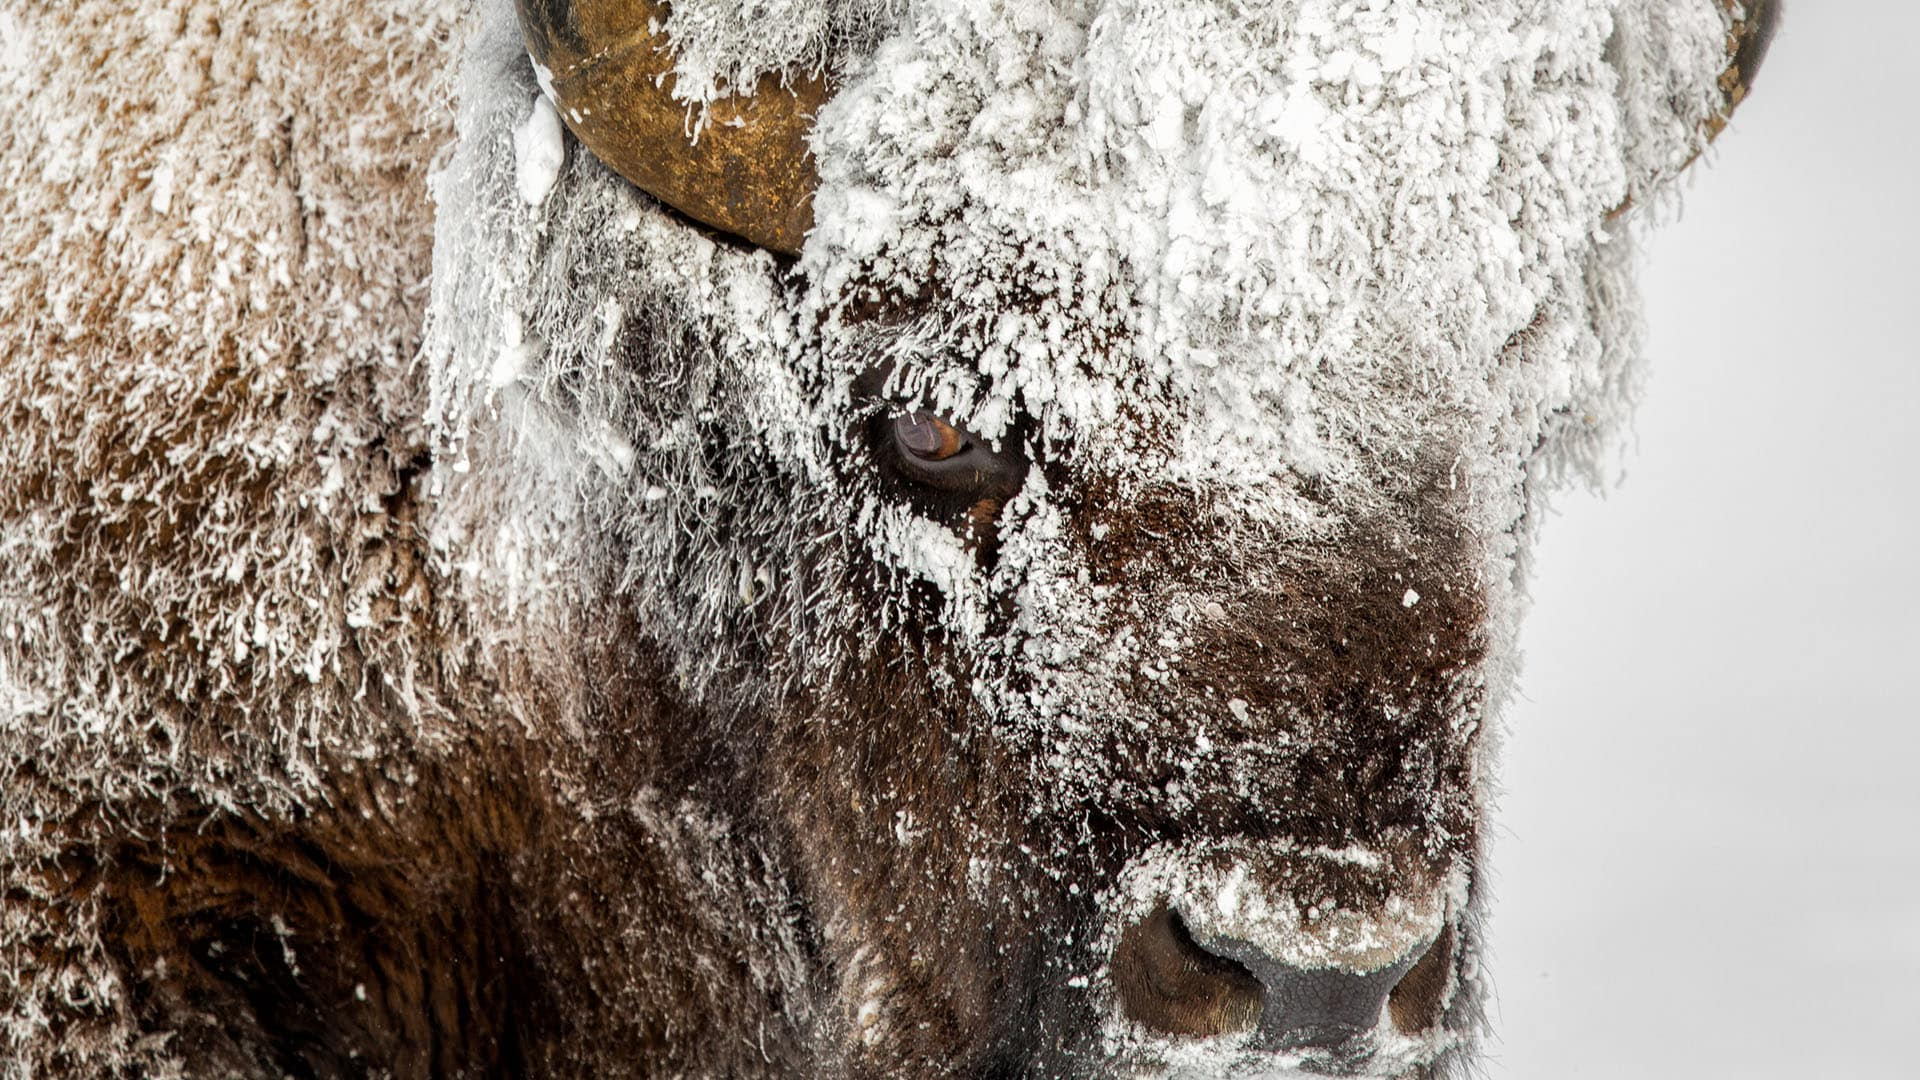 Geyser steam turns to frost on Bison in Yellowstone National Park.